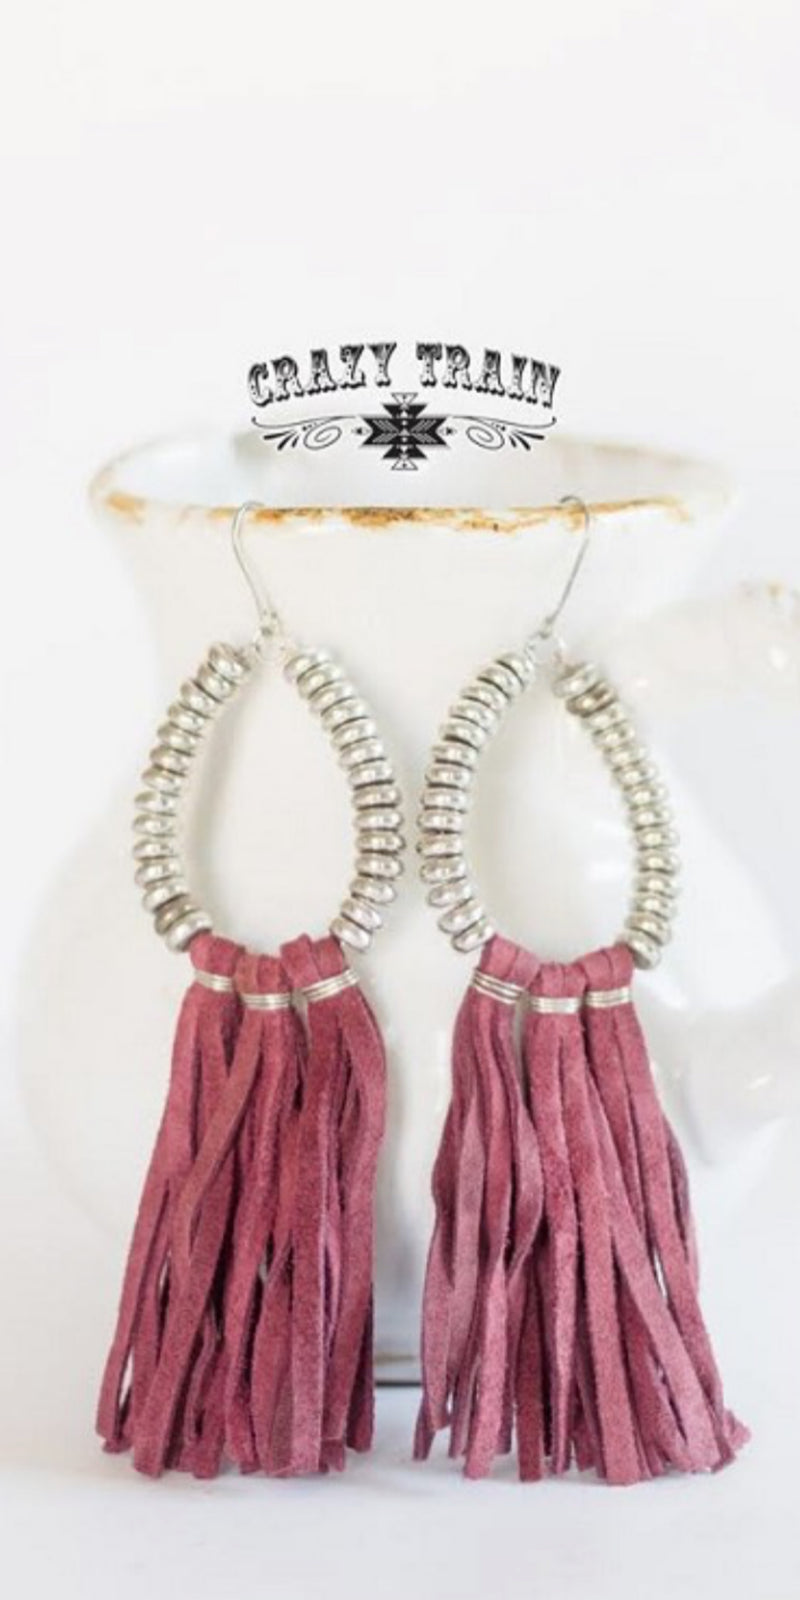 Rio Bravo Wine Earrings